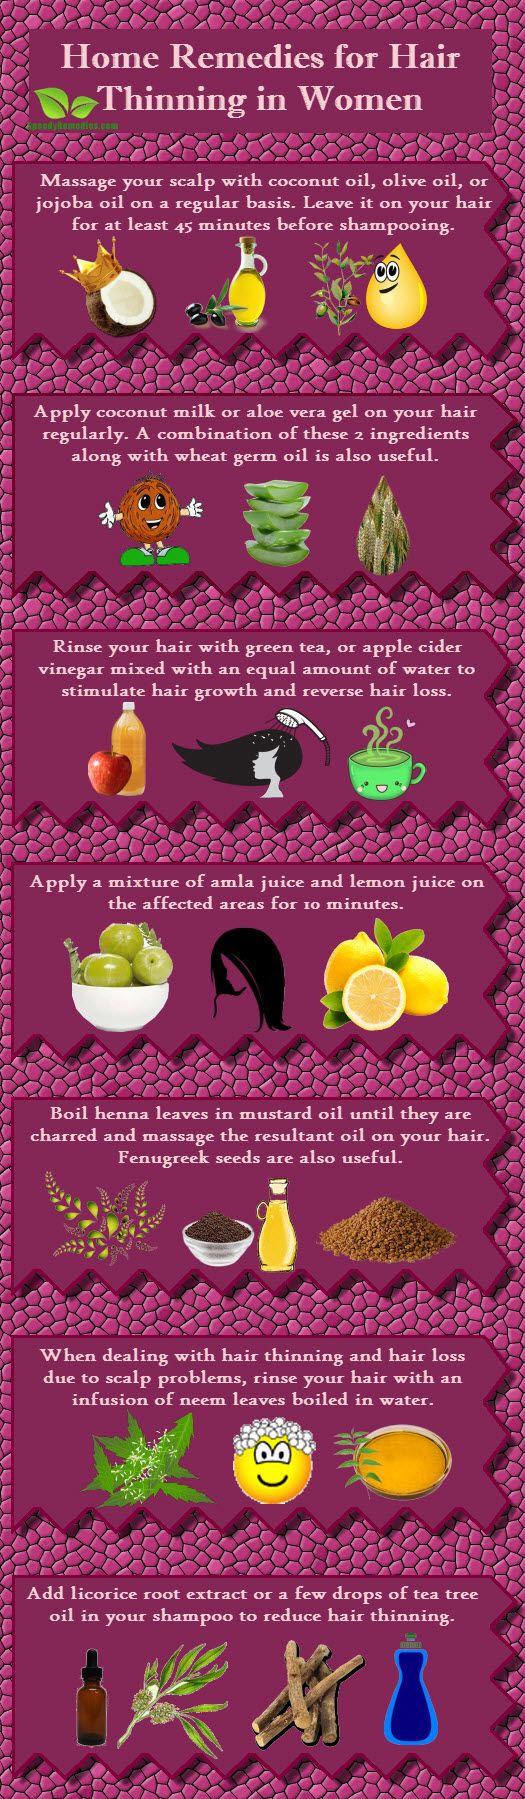 Home remedies for Thinning Hair